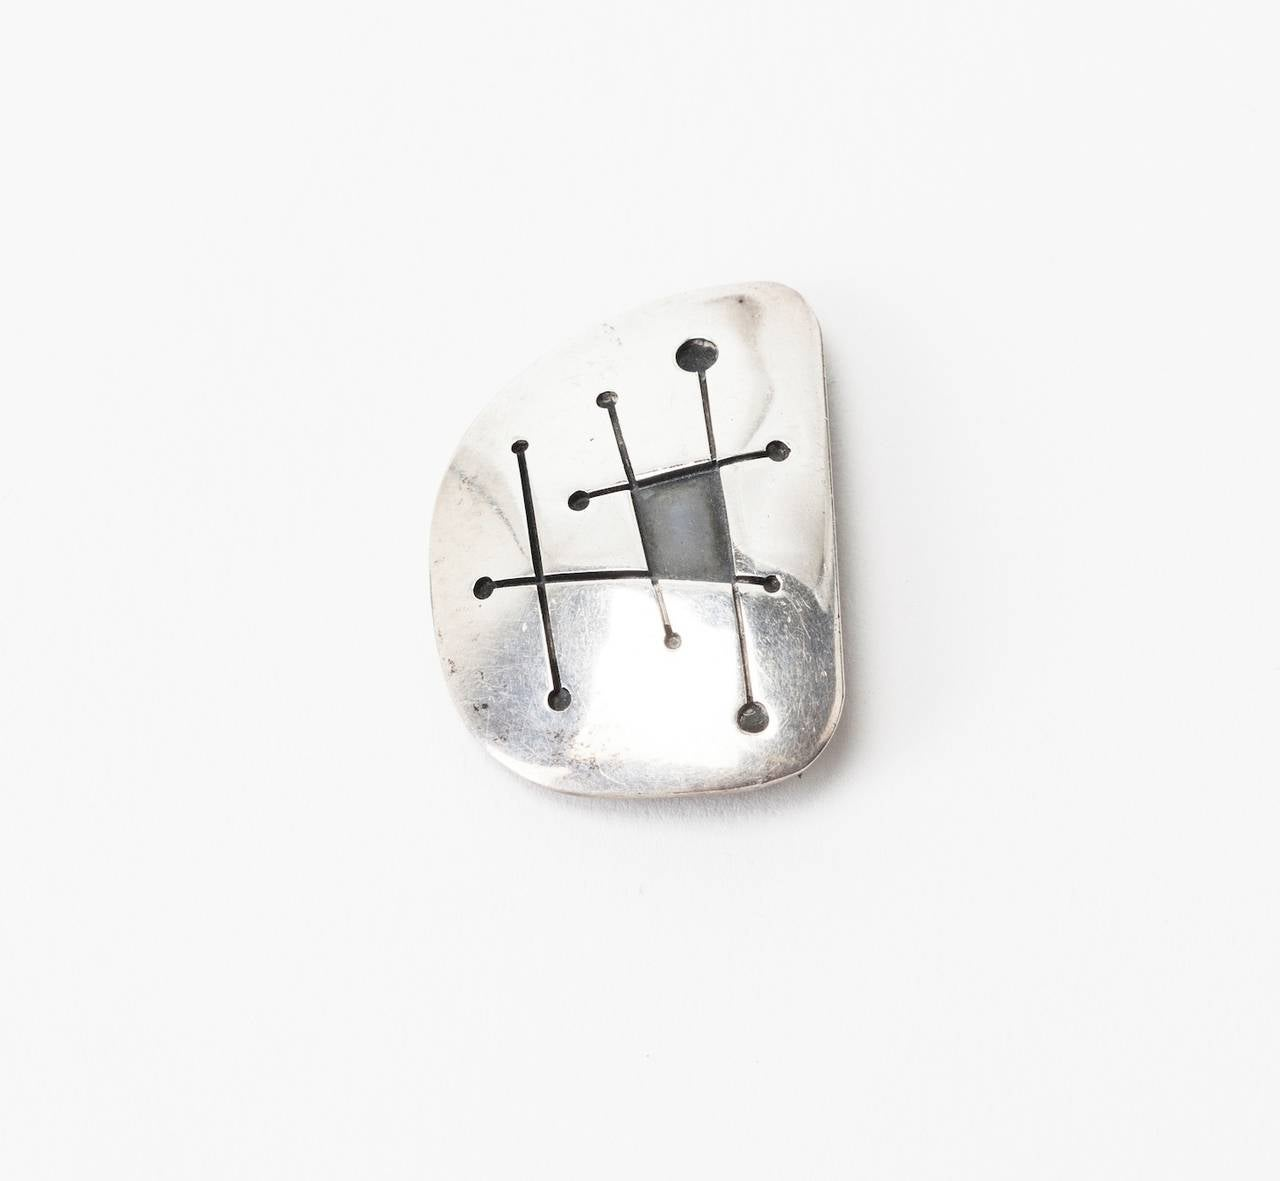 Ed Weiner Modernist Brooch  constructed of 2 layers of sterling silver, the top cut away with 50's atomic, modernist motifs, then soldered to the base and patinaed for high contrast. a stunning example of 50's Modernist aesthetic. 1.5